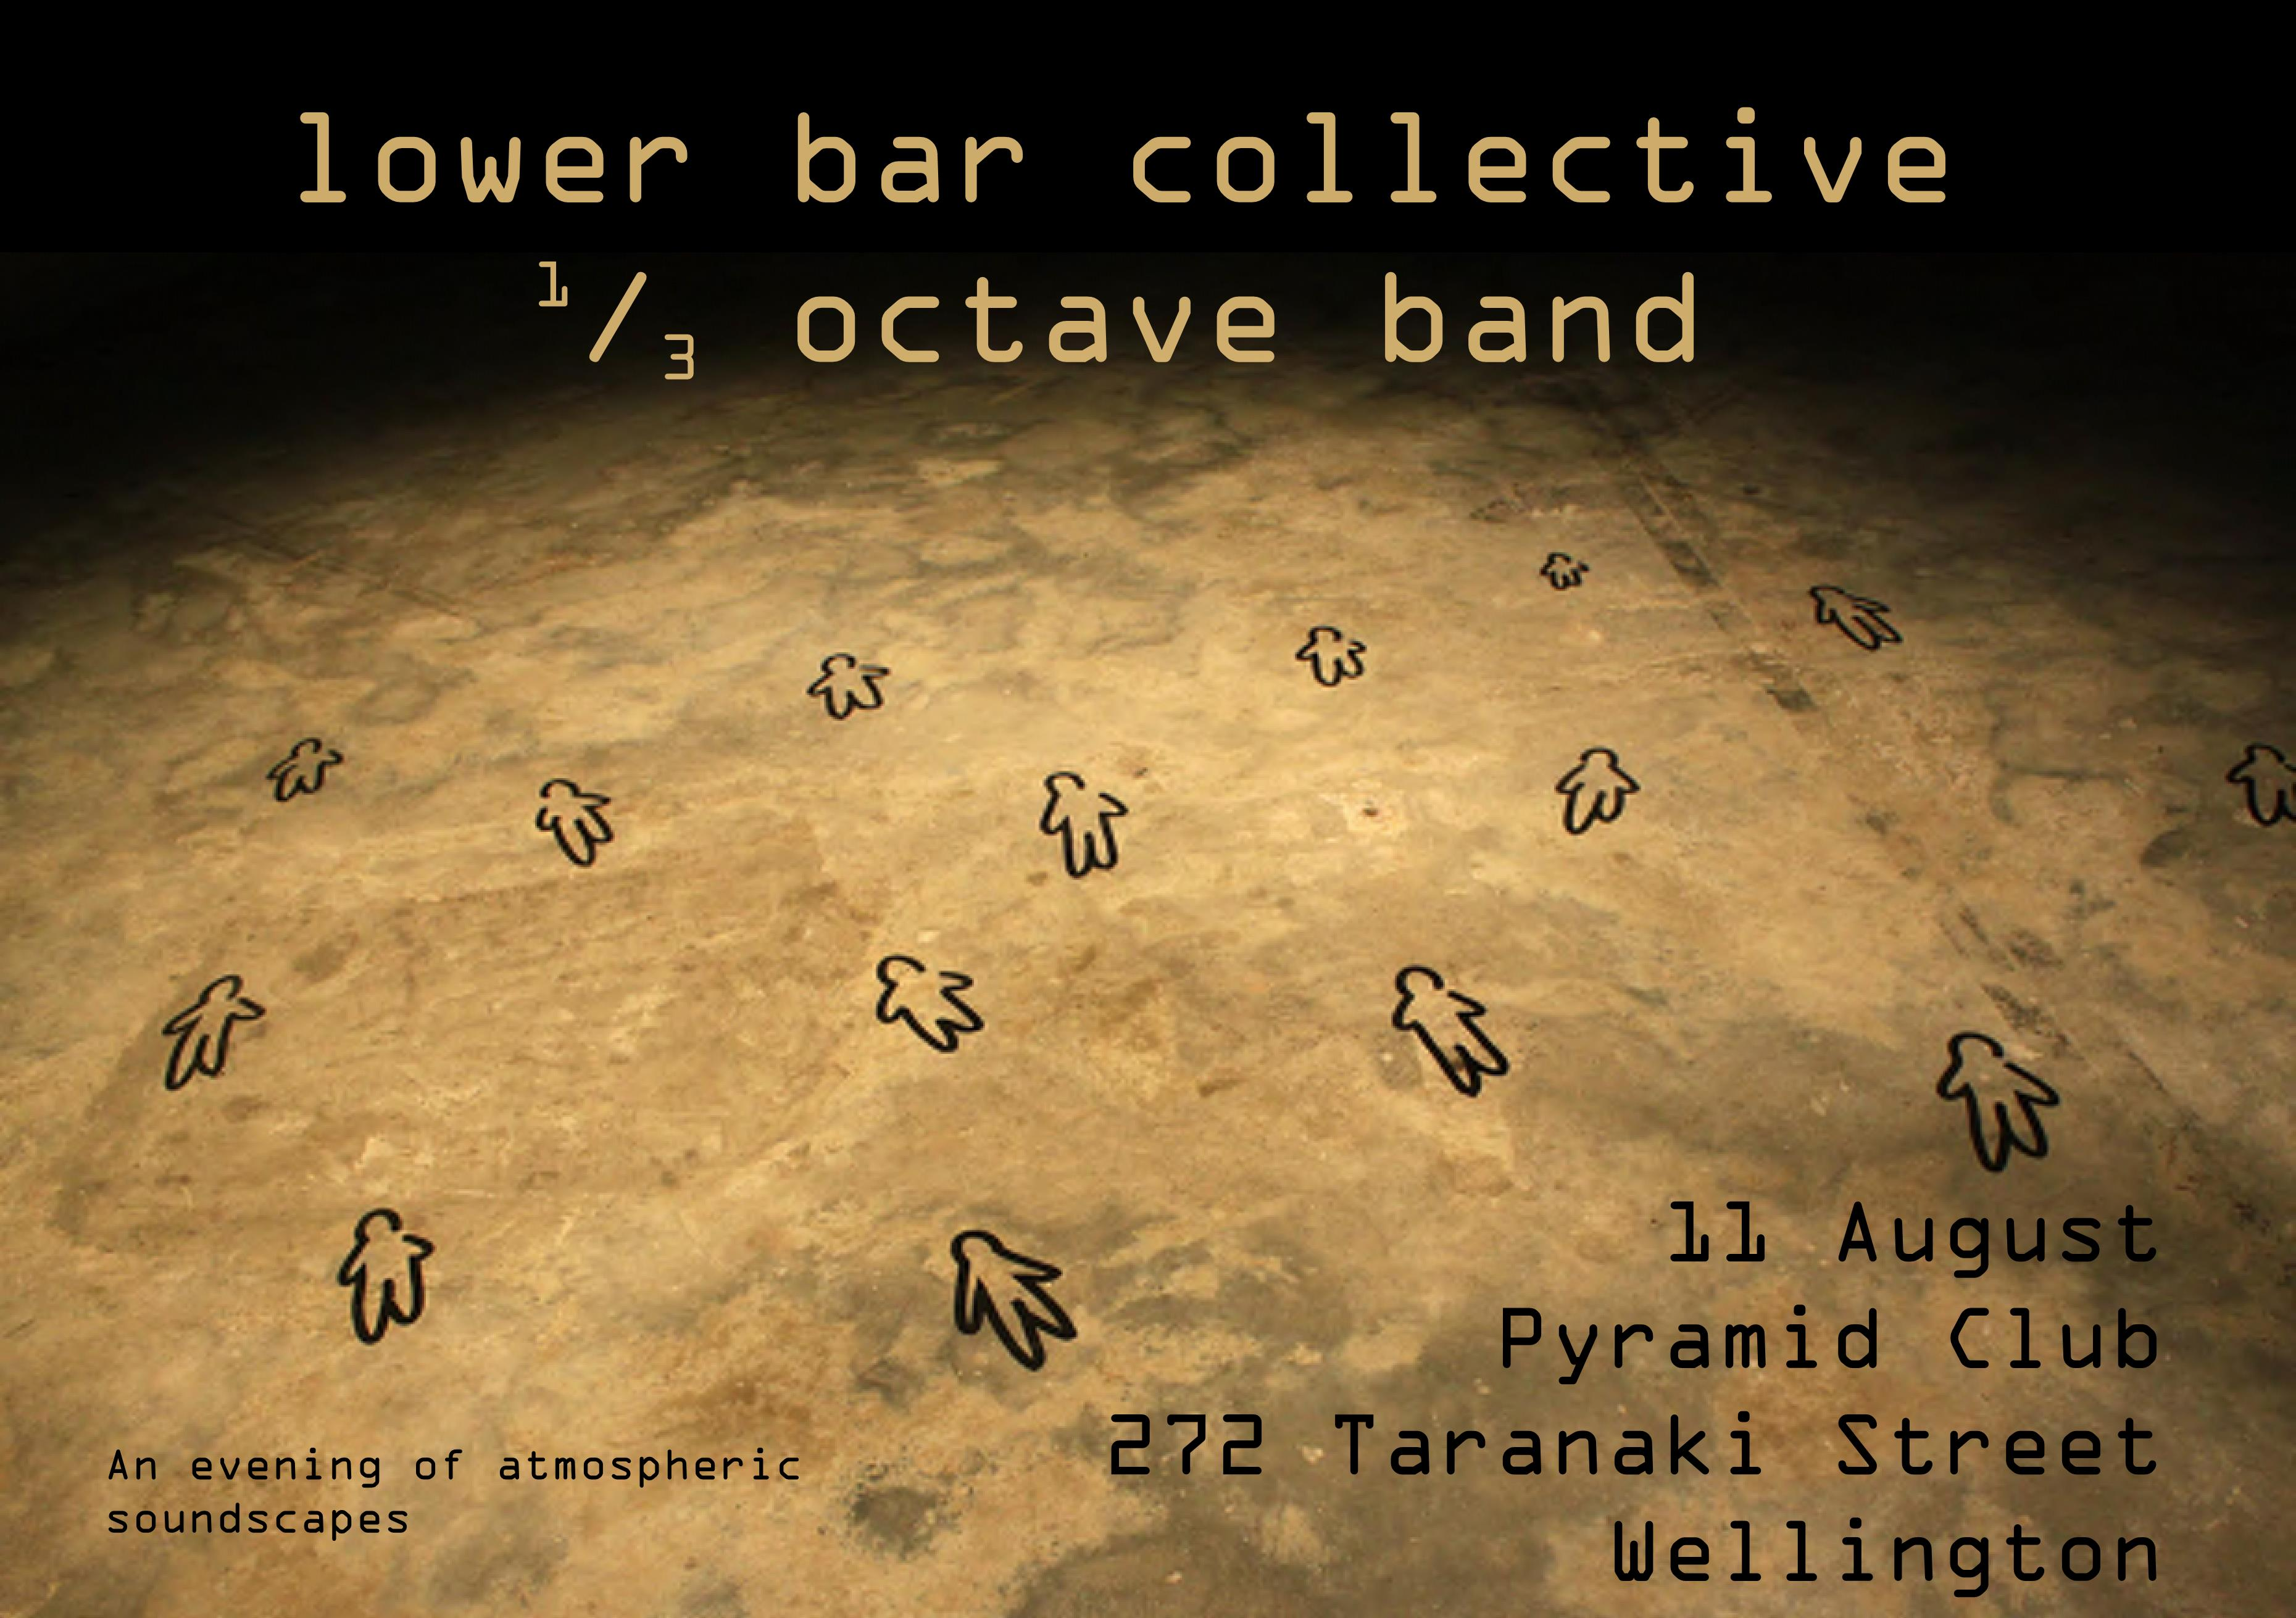 Lower Bar Collective, 13 Octave Band